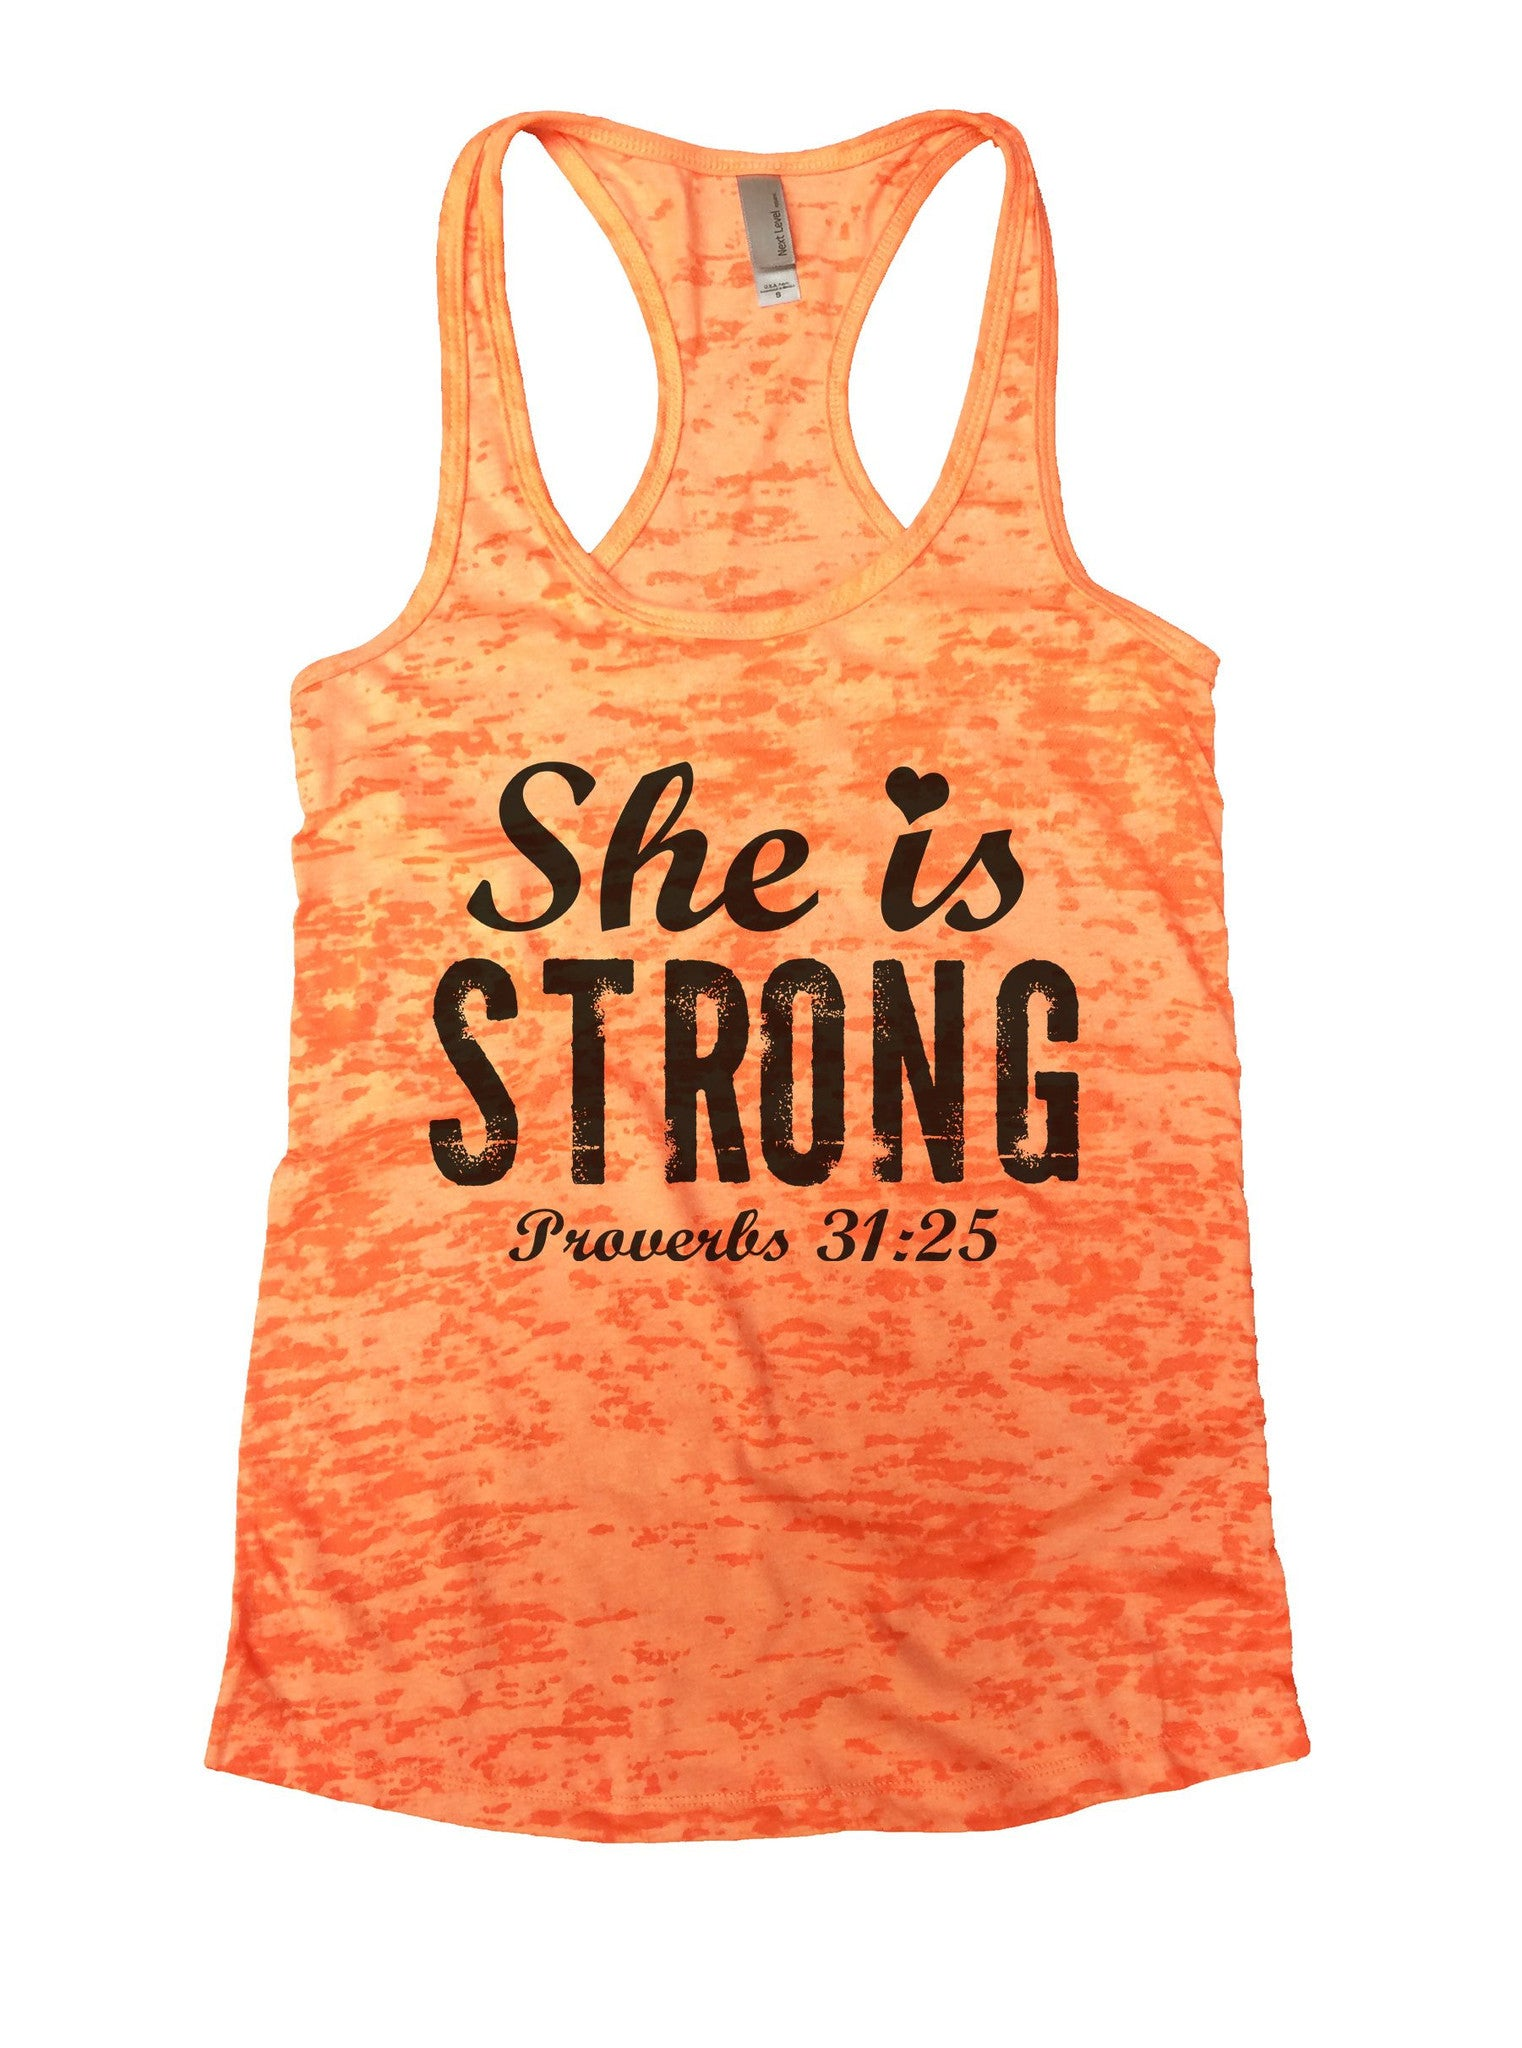 She Is Strong Proverbs 31:25 Burnout Tank Top By BurnoutTankTops.com - 939 - Funny Shirts Tank Tops Burnouts and Triblends  - 3